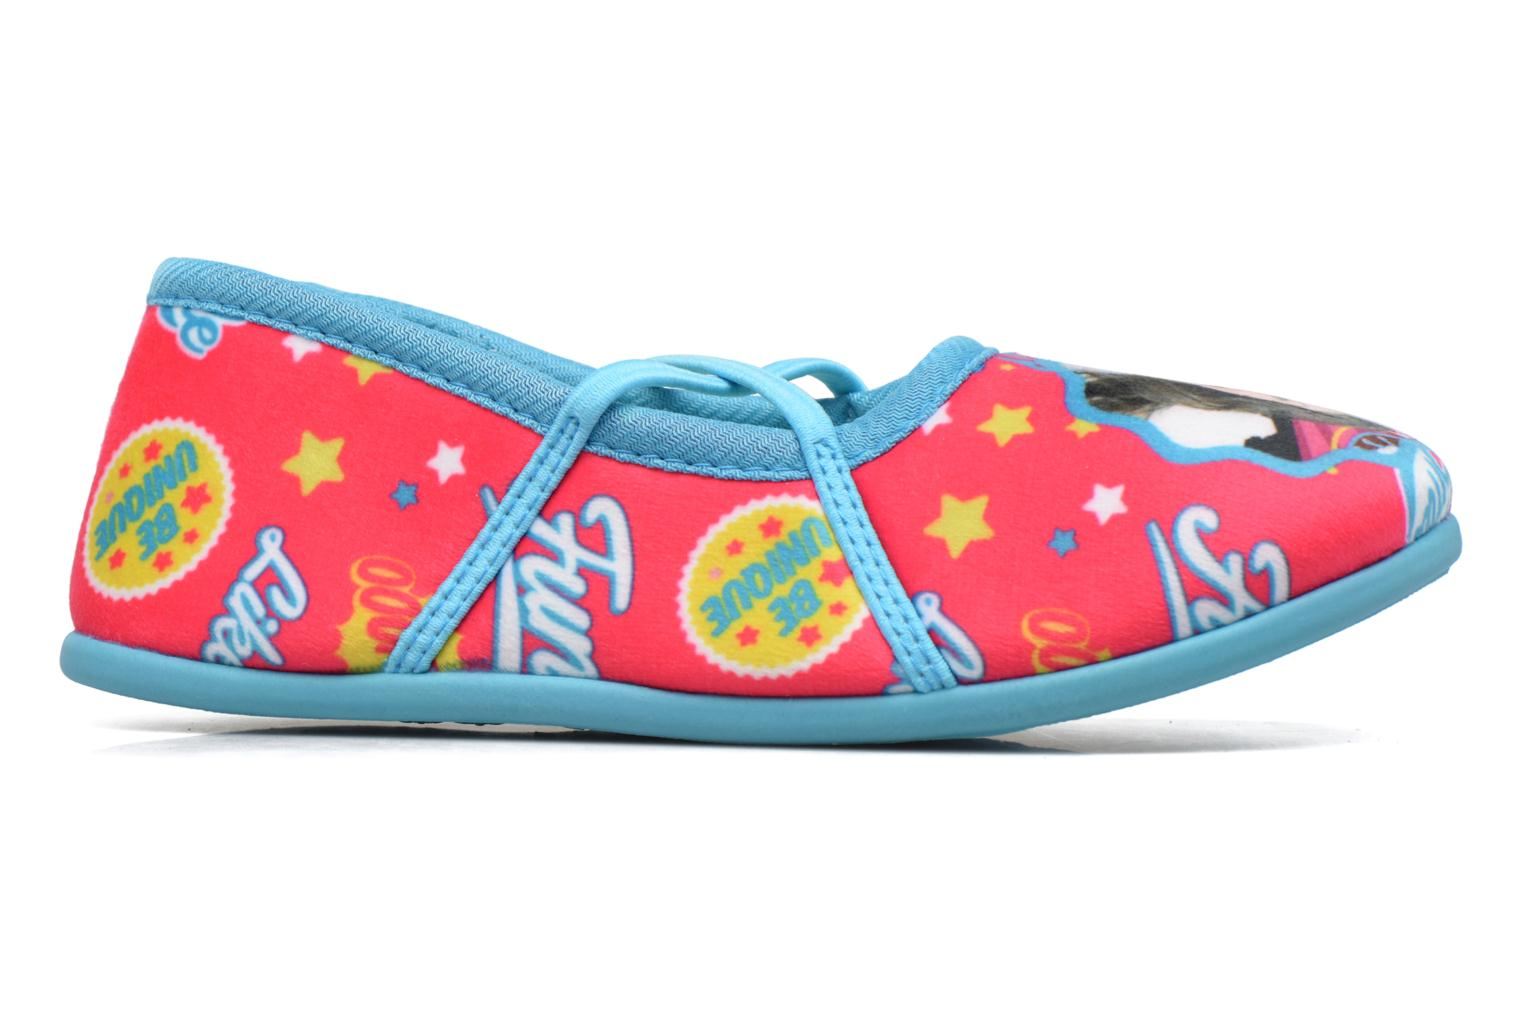 Slippers Soy Luna Sanadora Blue back view